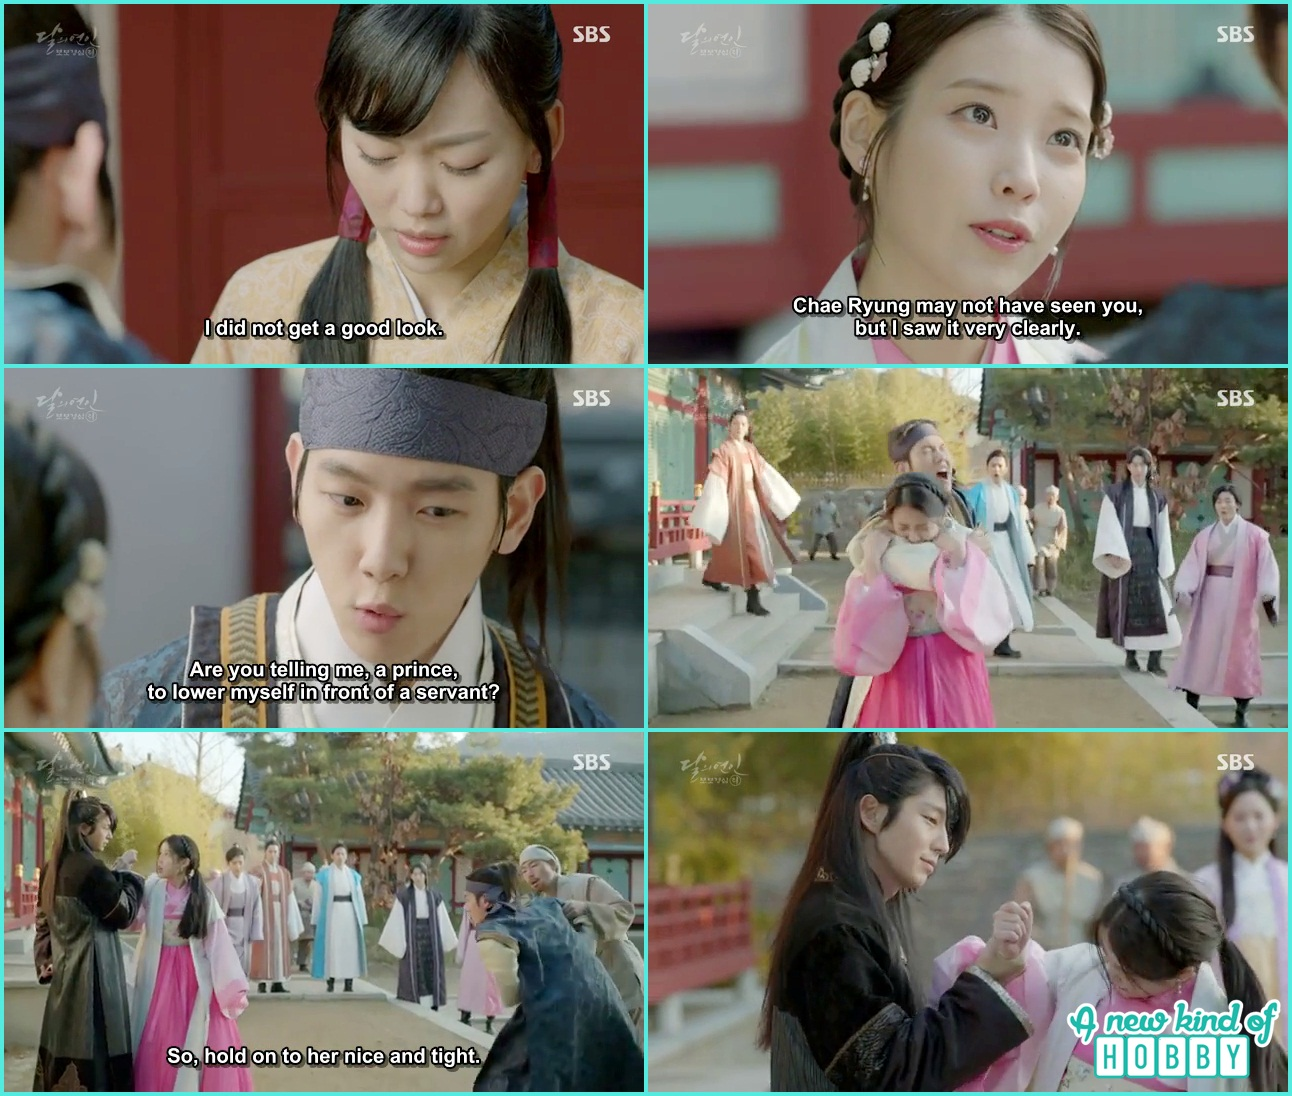 Moon lovers scarlet heart ryeo episode 2 2016 - Hae So And 10th Prince Fight 4th Prince Grab Hae So Hand To Stop Her